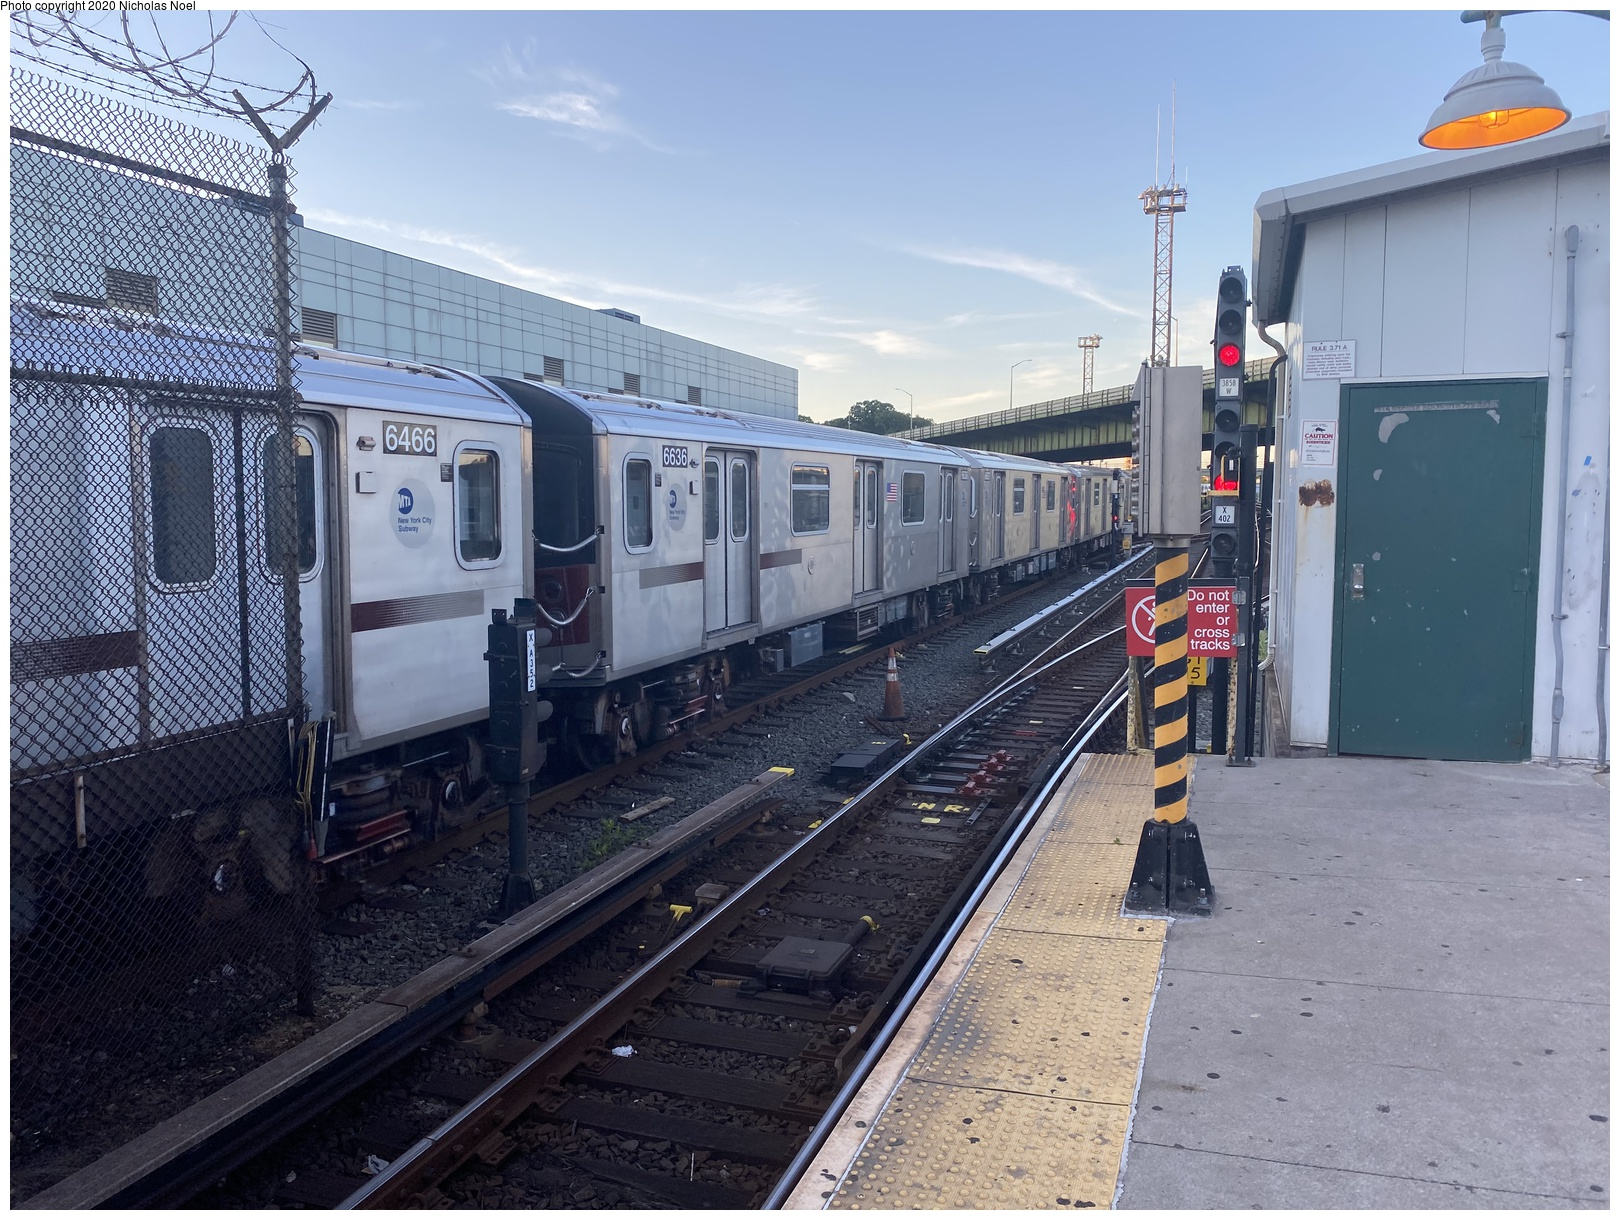 (154k, 1044x685)<br><b>Country:</b> United States<br><b>City:</b> New York<br><b>System:</b> New York City Transit<br><b>Line:</b> 3rd Avenue El<br><b>Location:</b> 132nd & Alexander <br><b>Car:</b> MUDC  <br><b>Photo by:</b> Joel Shanus<br><b>Notes:</b> View N.E. from Harlem River and NHRR freight yards, near E.132nd St & Alexander Ave, Bronx; southbound MUDC local train. Circa 1954. Building in background still exists at foot of Alexander Ave.<br><b>Viewed (this week/total):</b> 2 / 3866